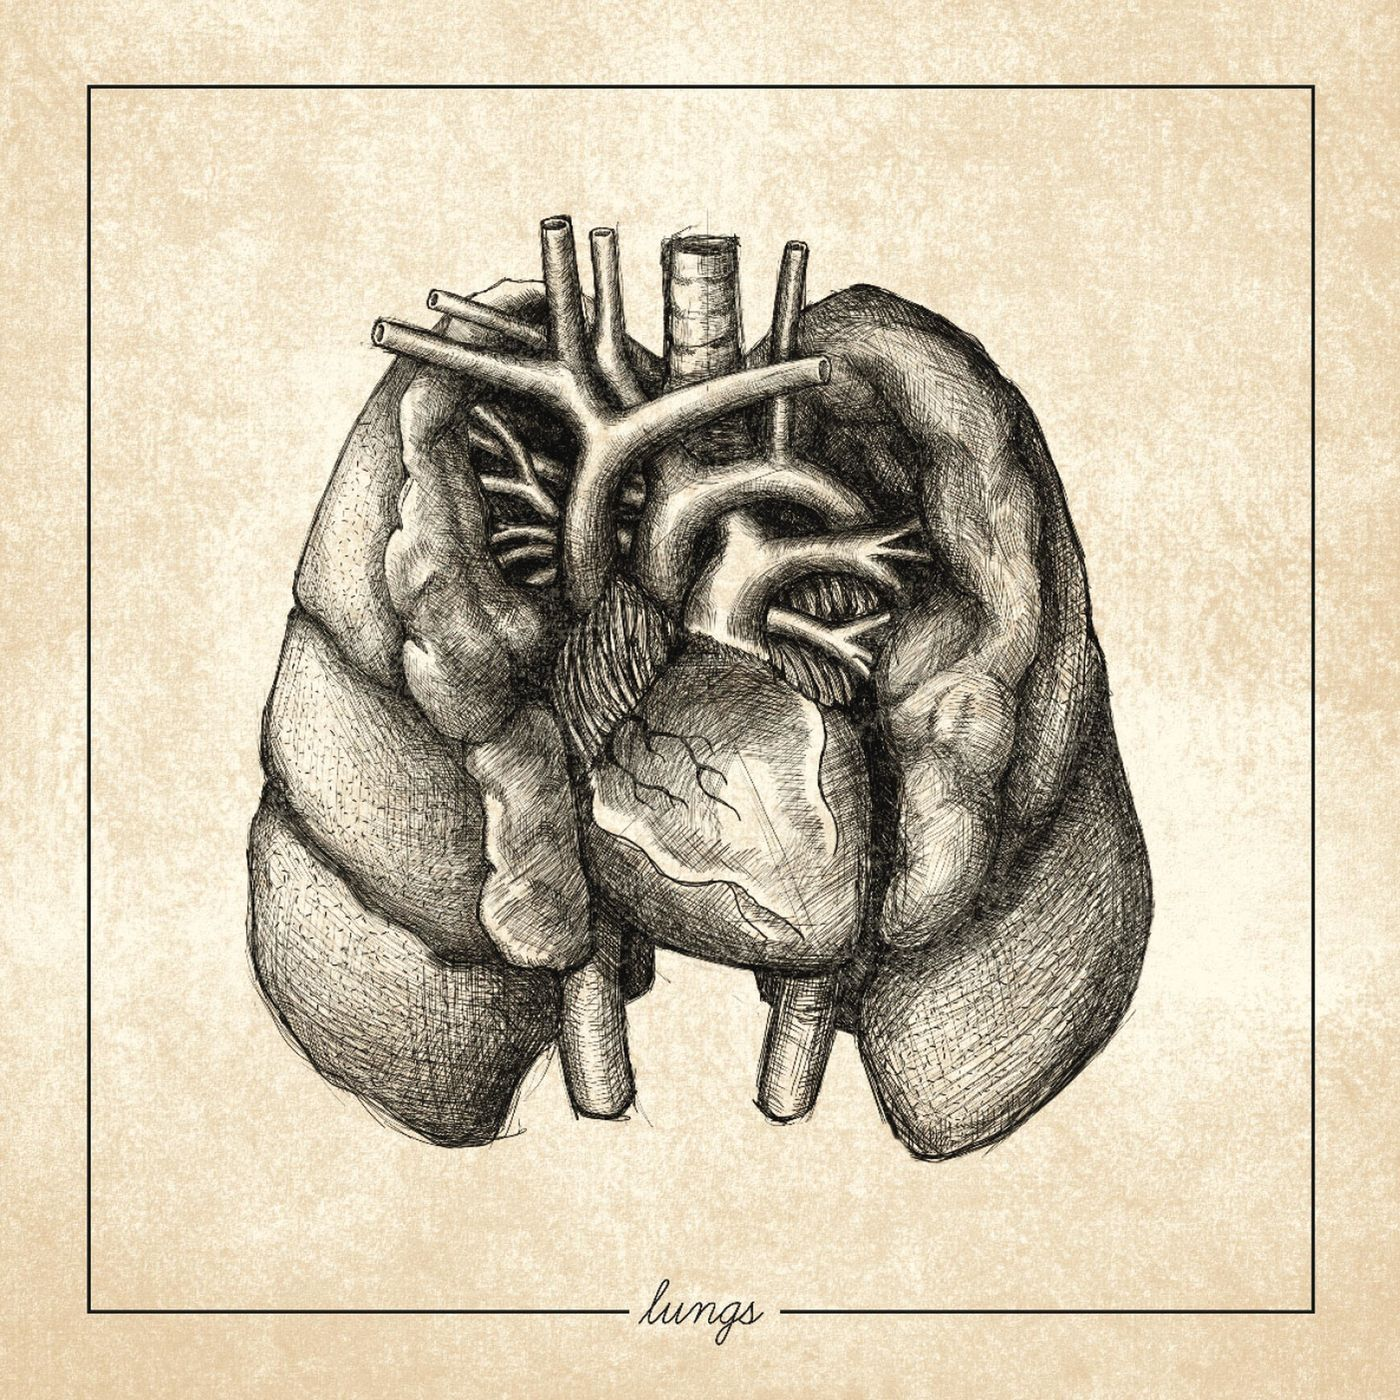 Regrowth - Lungs (2020)